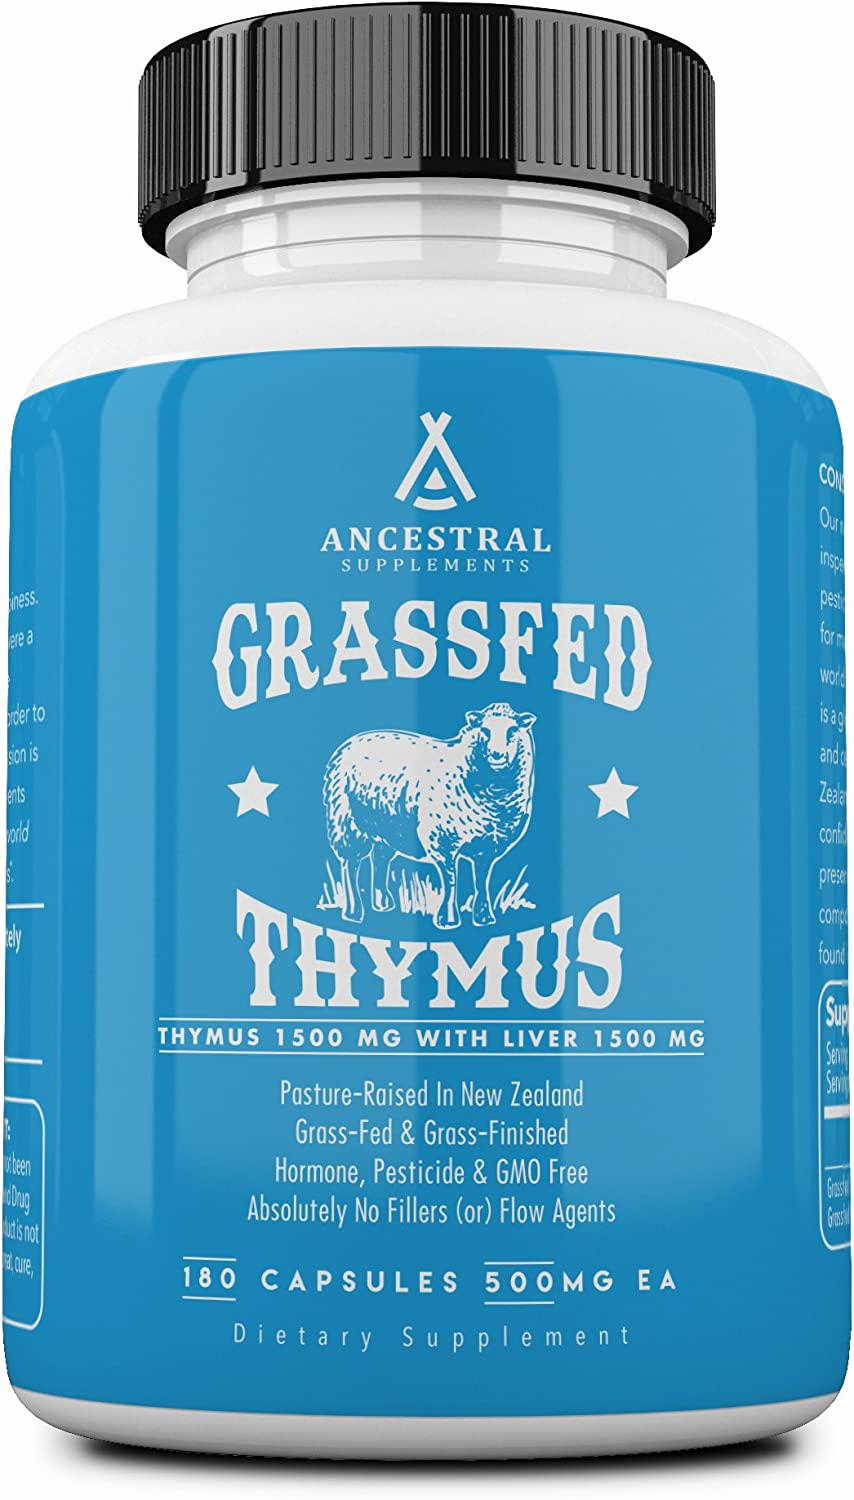 Ancestral Supplements Grass Fed Thymus Extract (Glandular) — Supports Immune, Histamine, Allergy Health (180 Capsules)